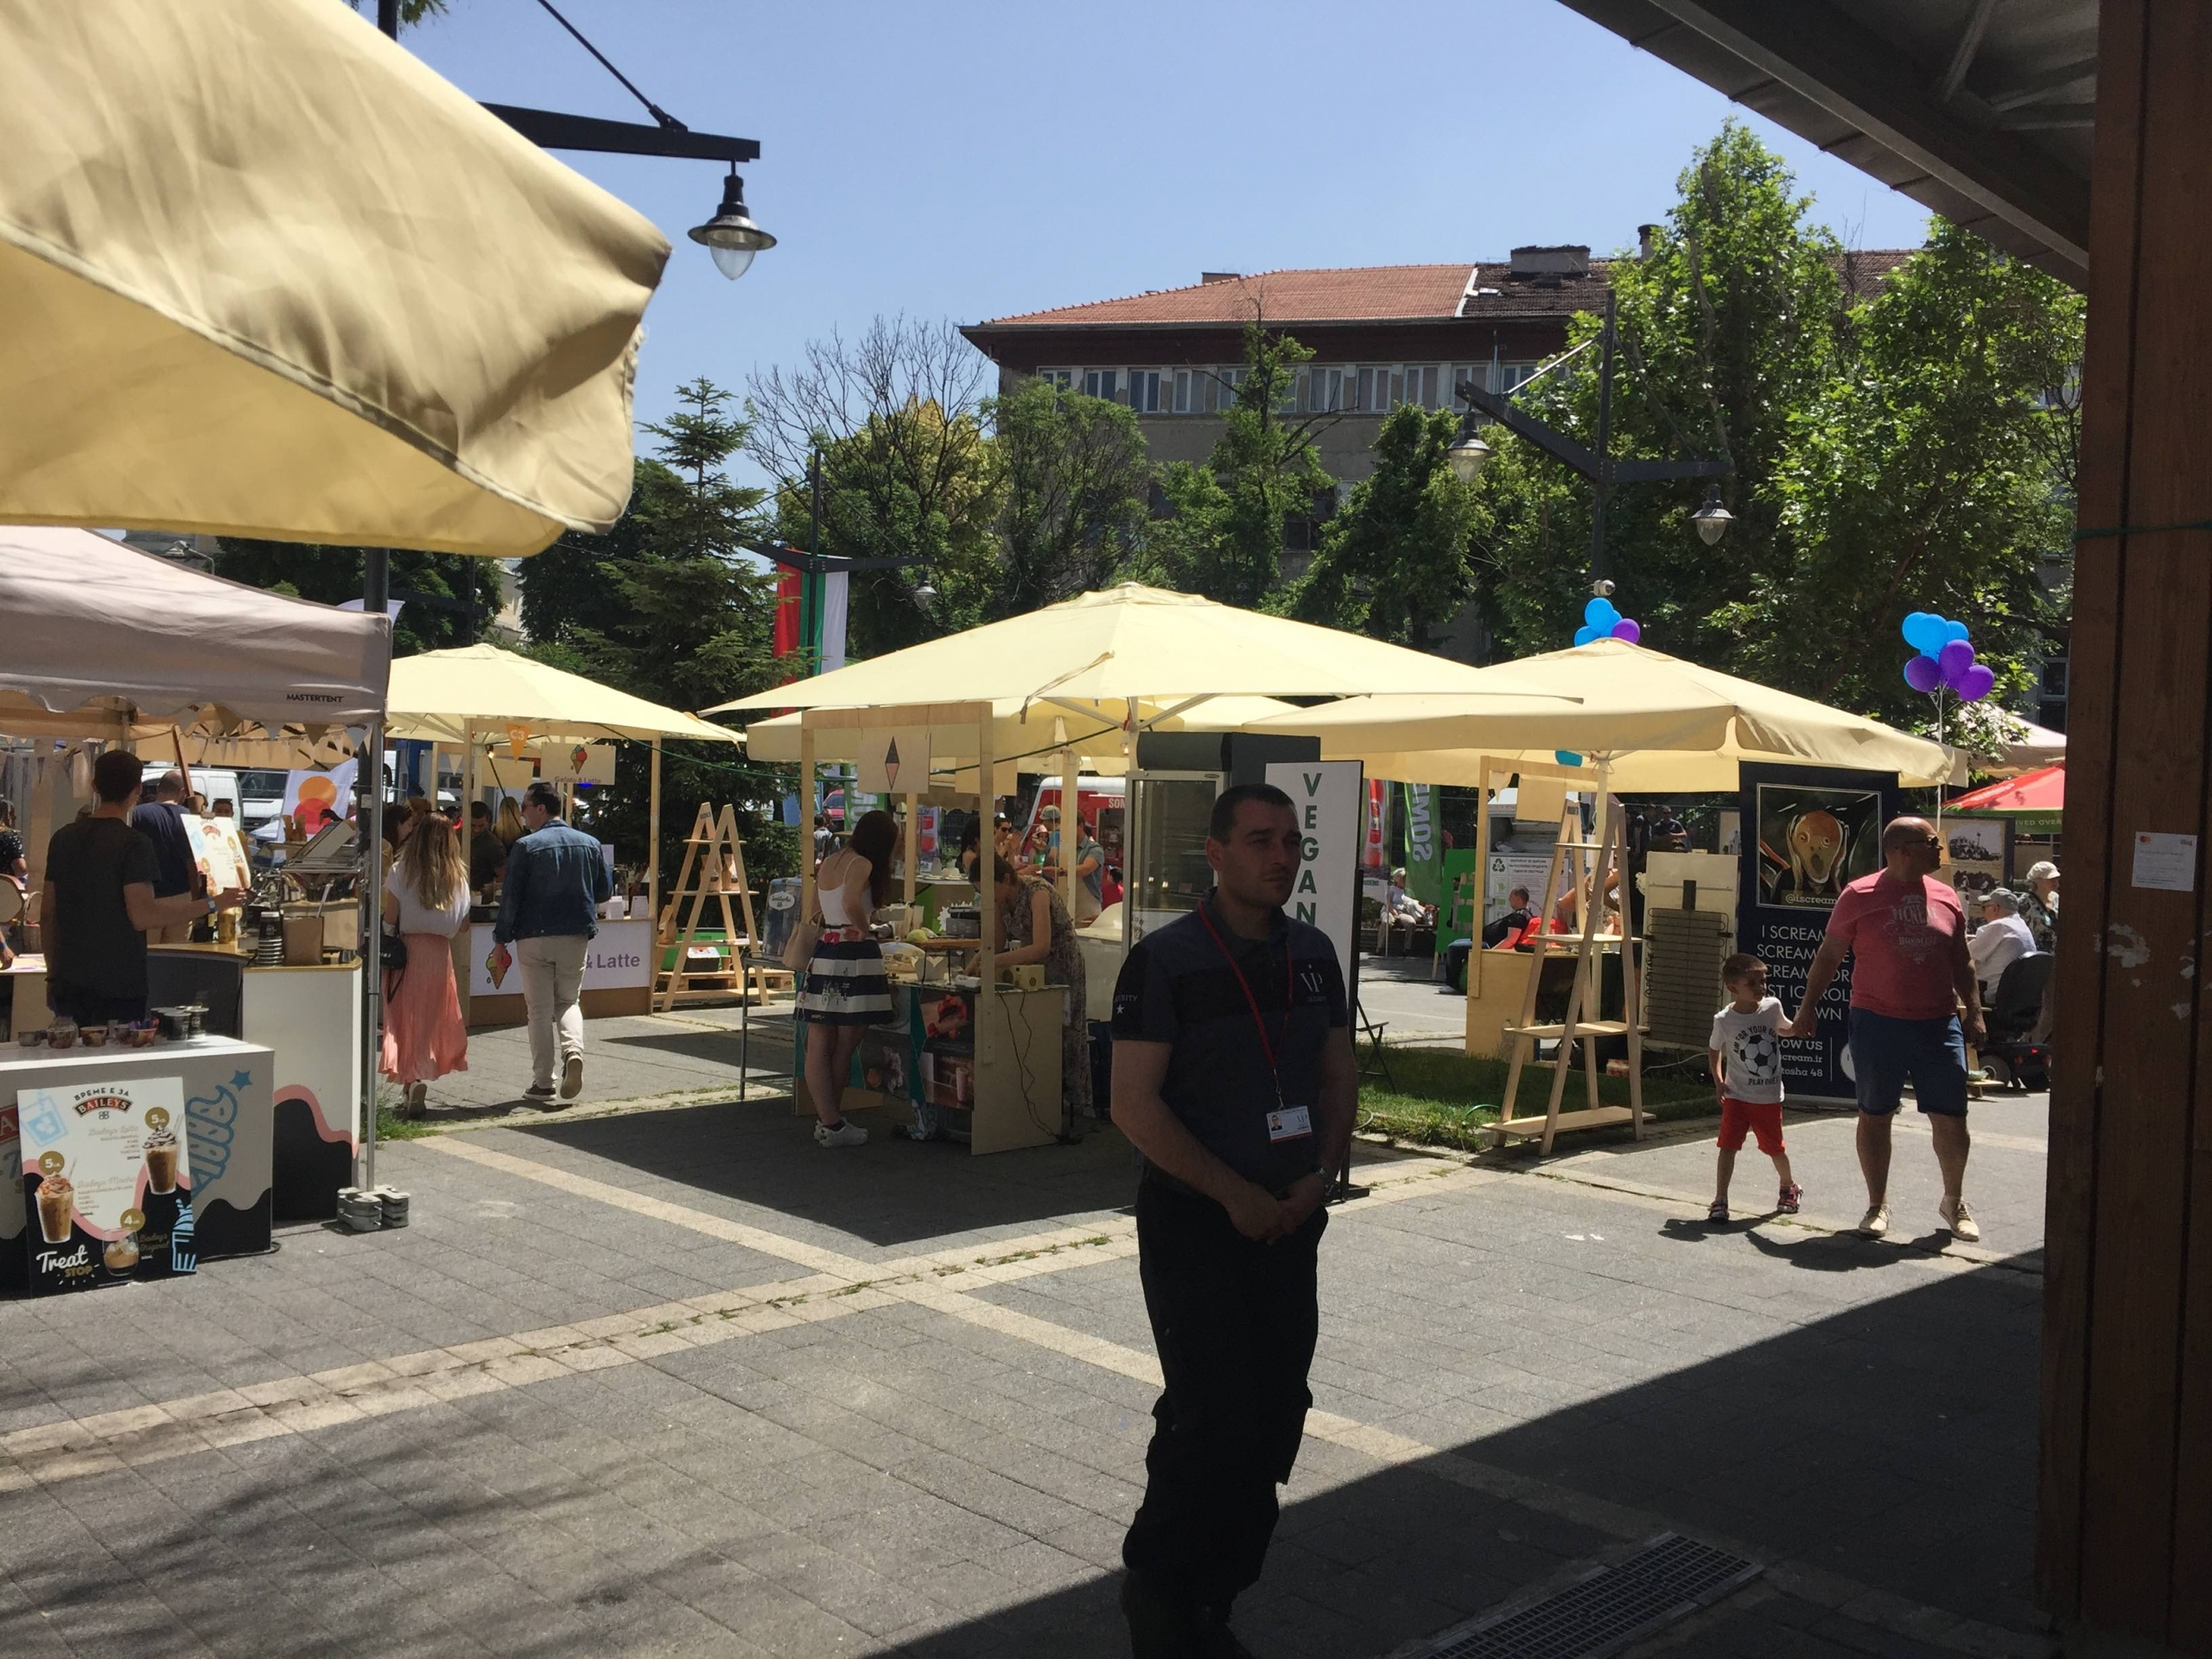 On the 19th and 20th of September, Zhenski Pazar Market is Once Again  Hosting Bacchus StrEAT Fest – 4